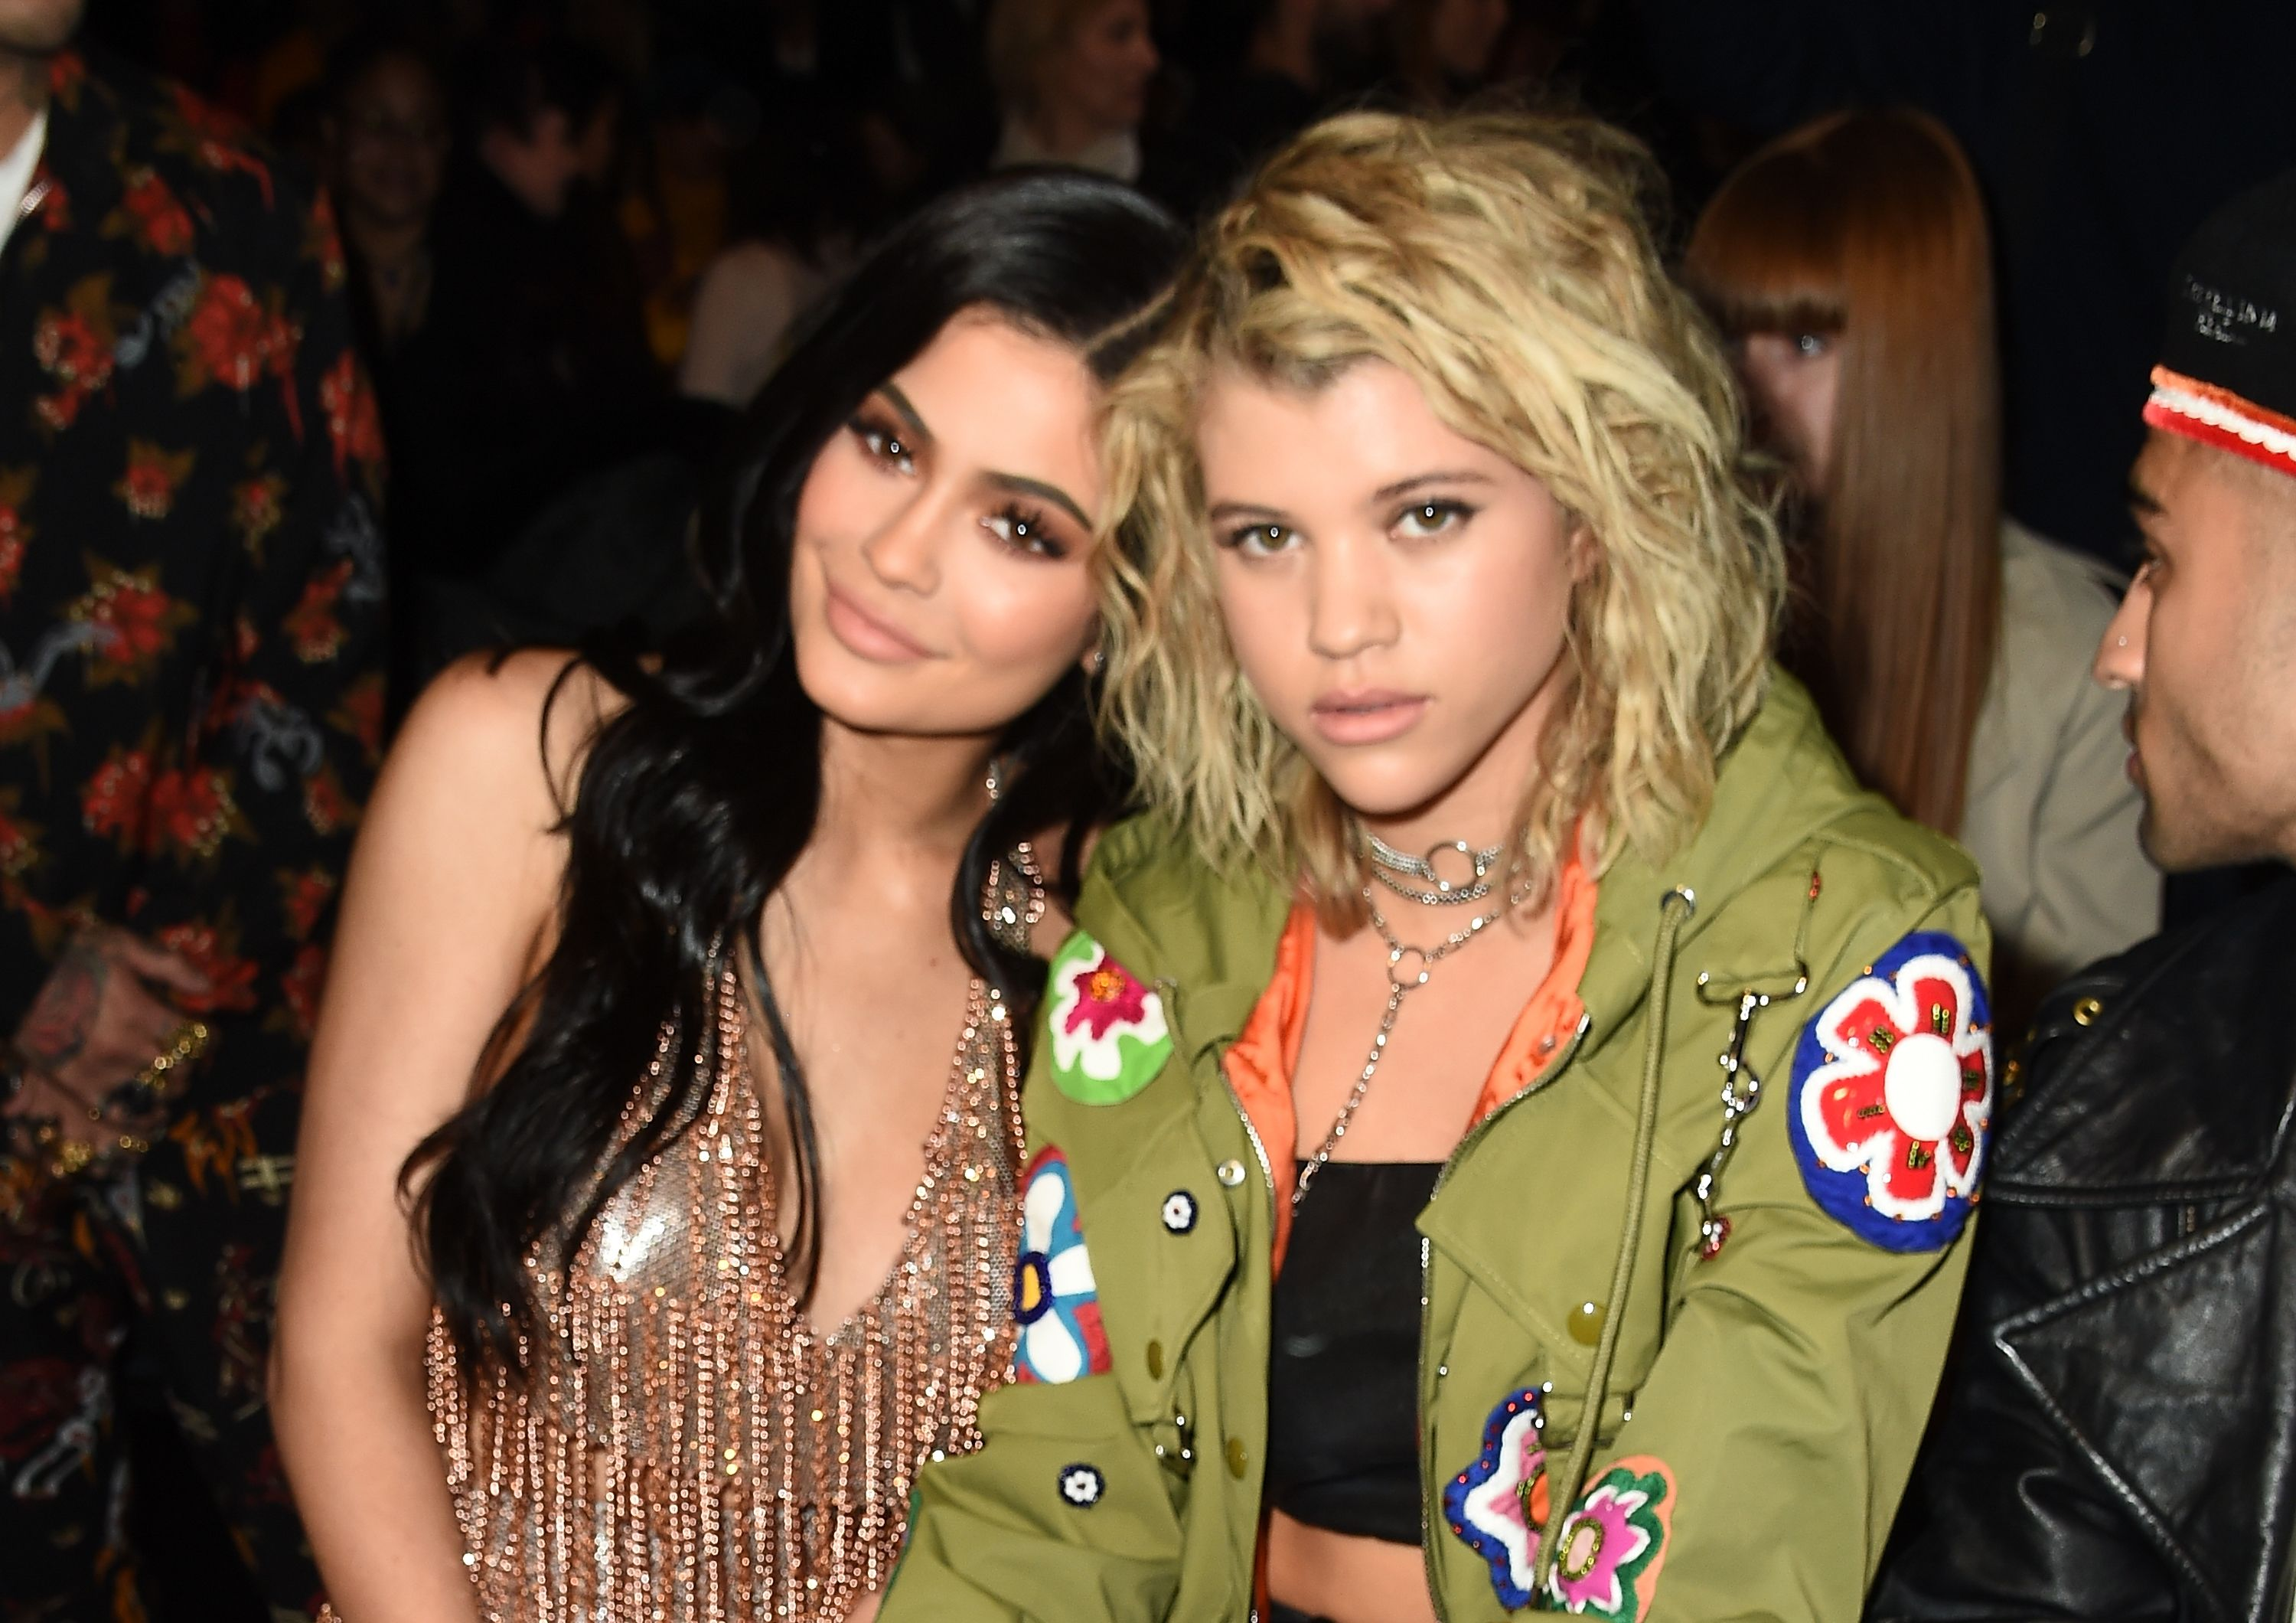 Kylie Jenner and Sofia Richie grinning, while sitting together.